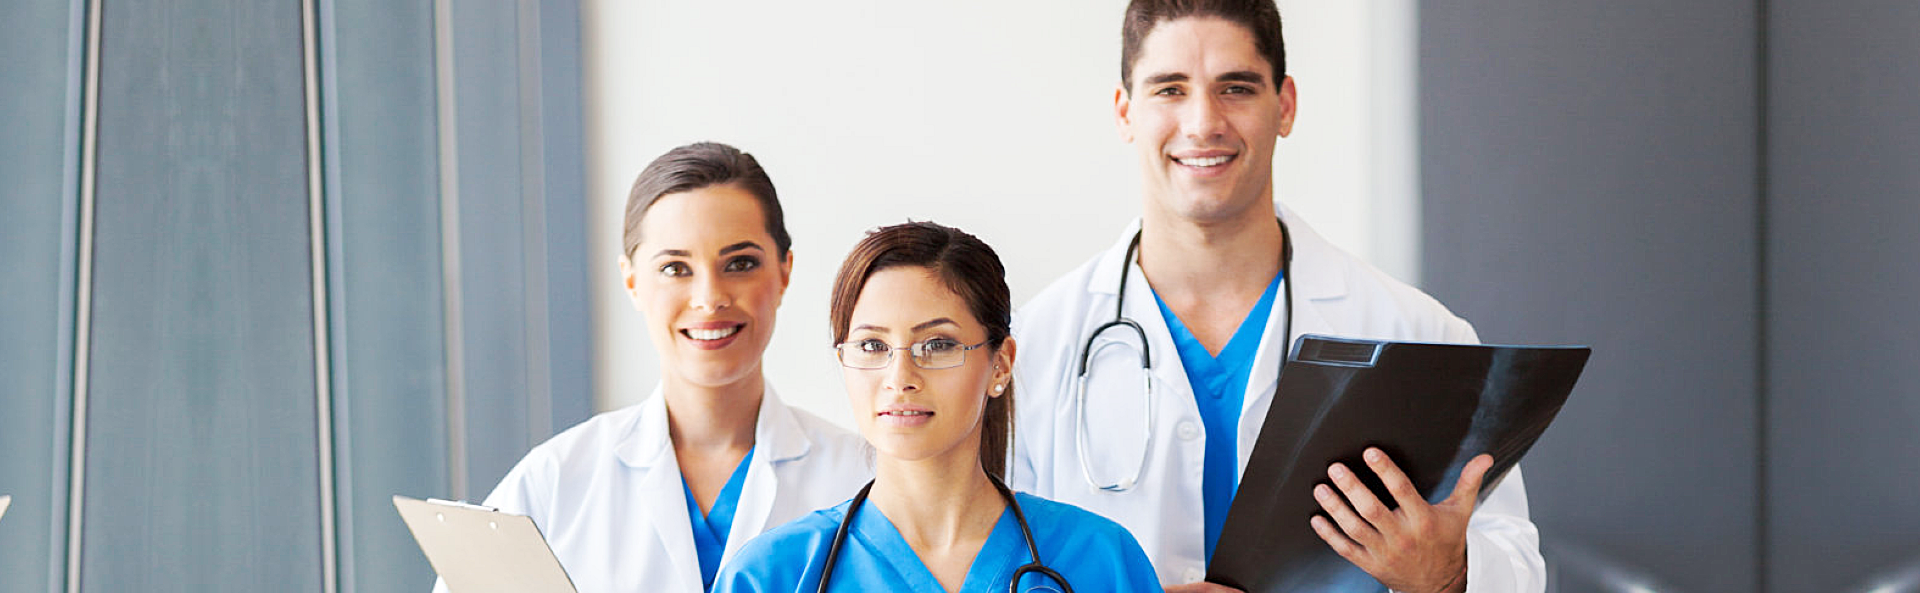 Group of professional doctors and nurse